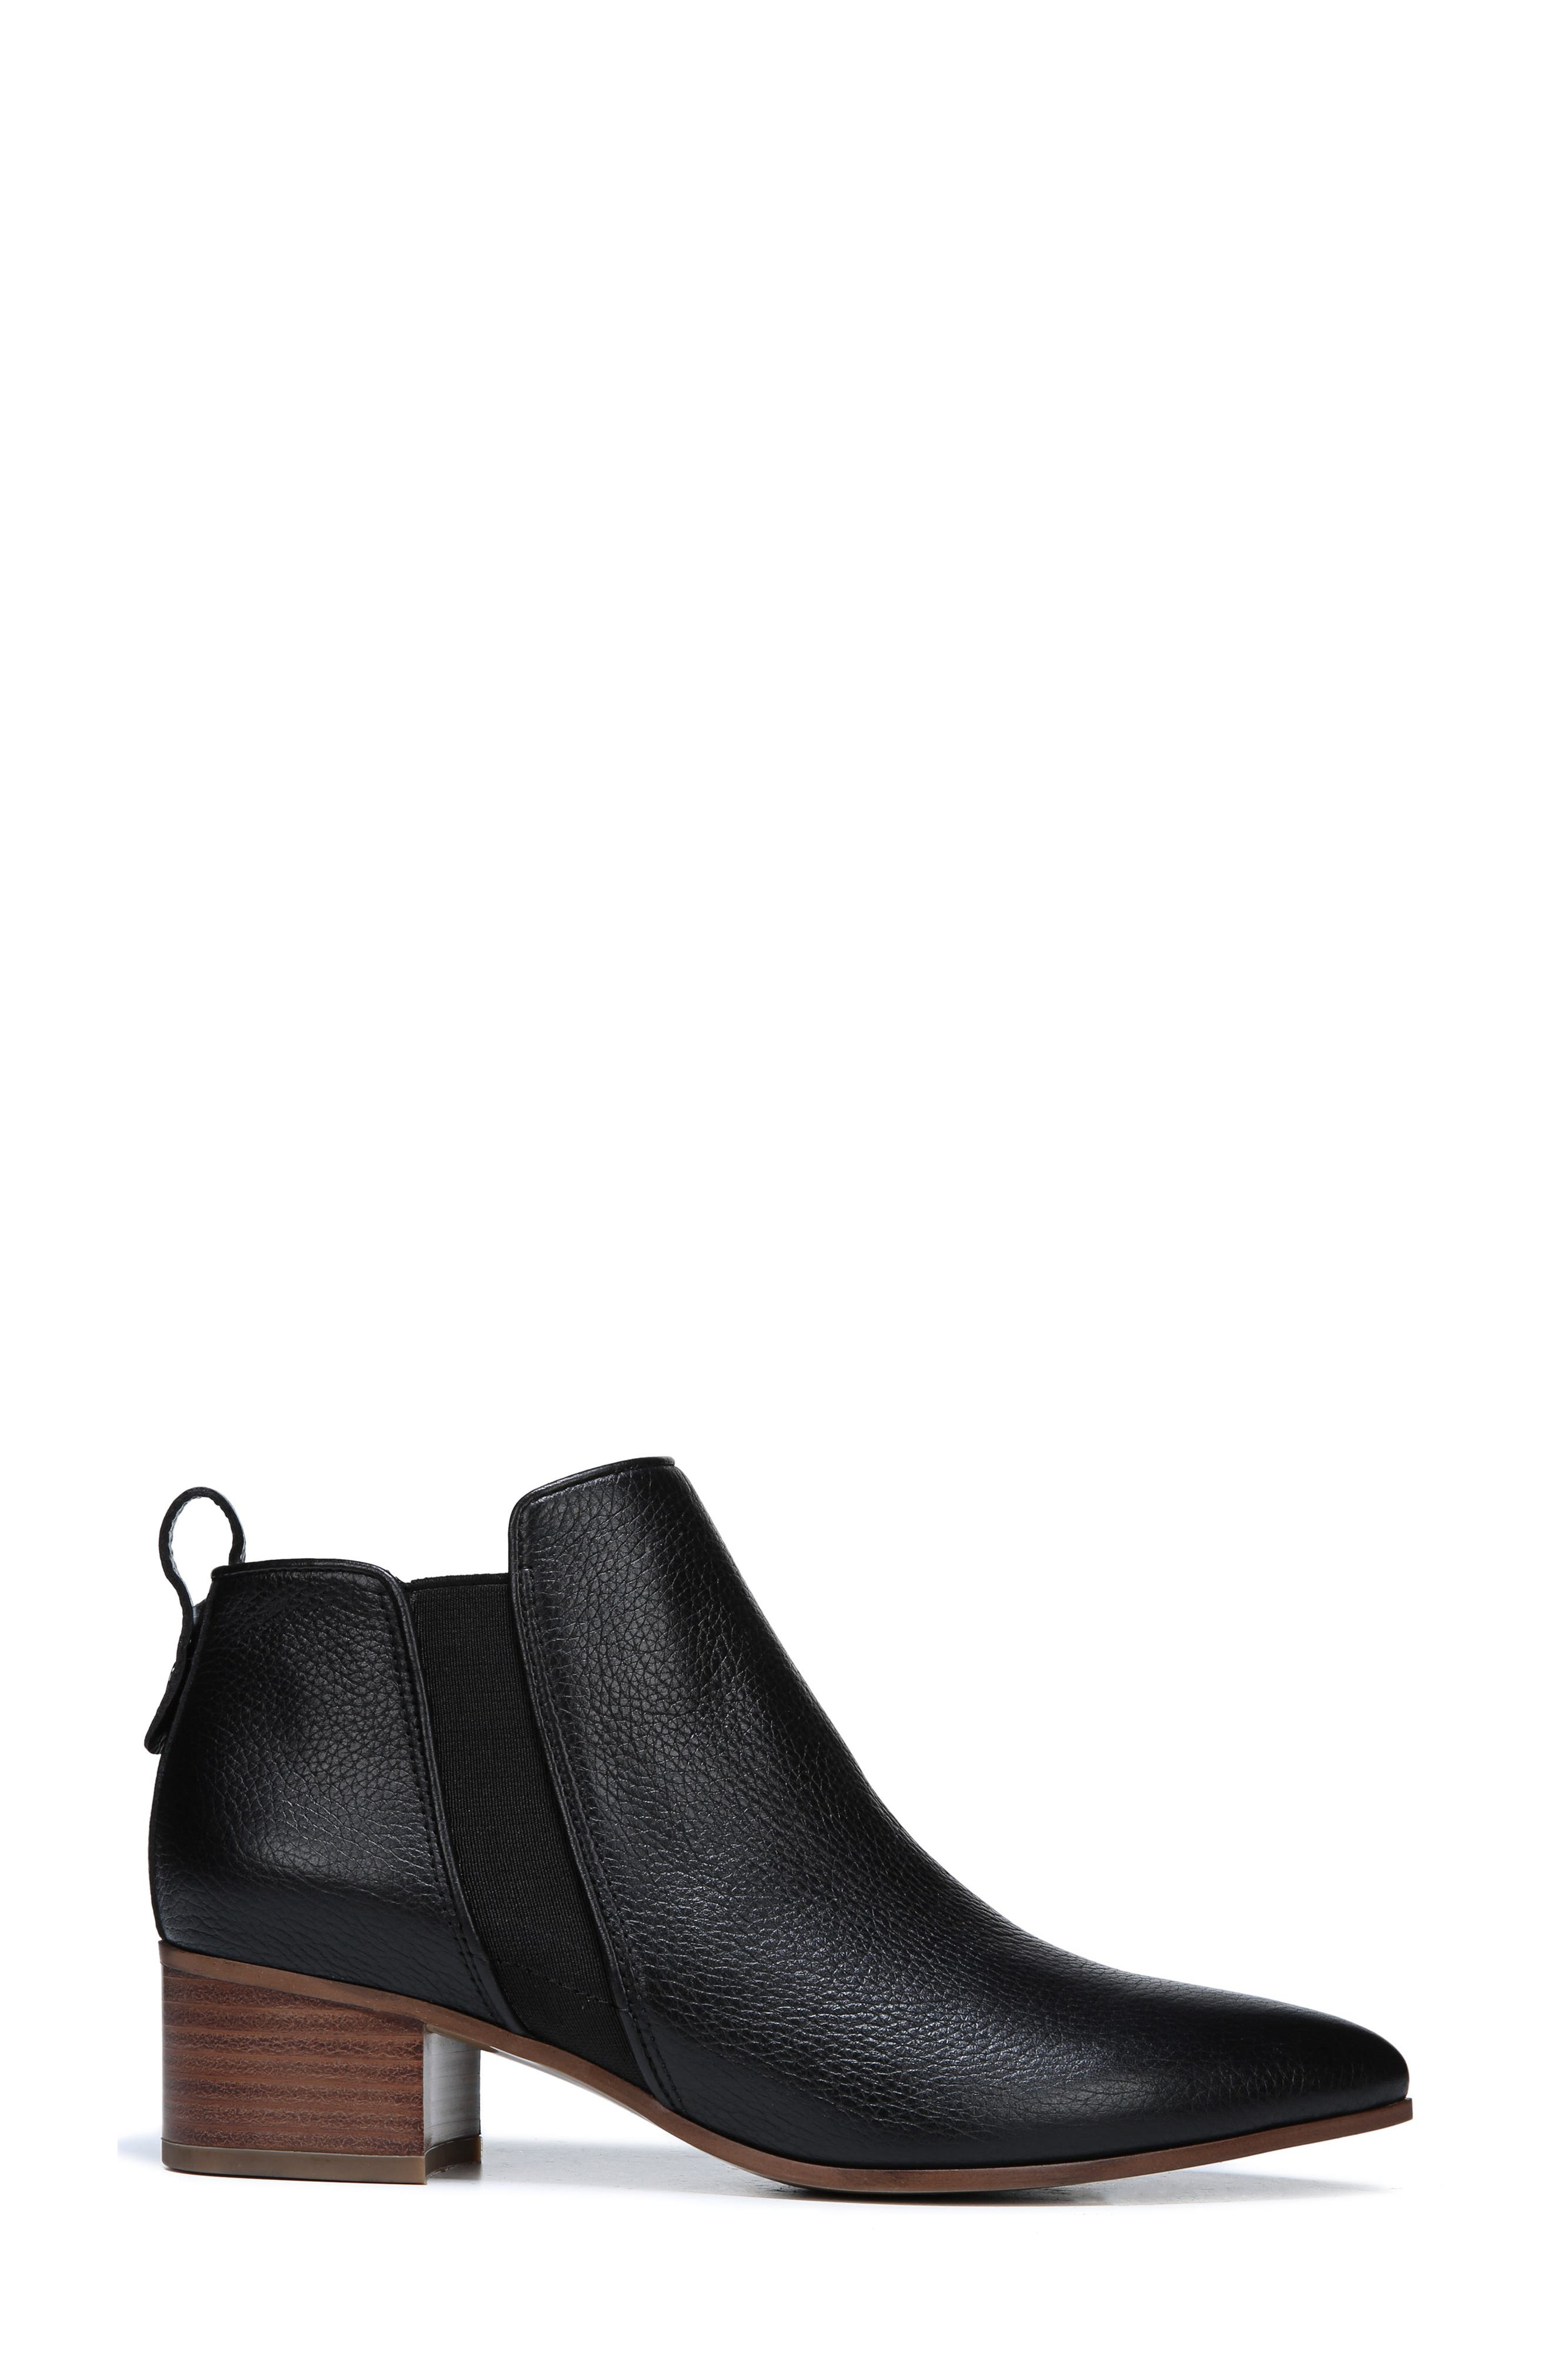 Jollie Bootie,                             Alternate thumbnail 3, color,                             BLACK LEATHER